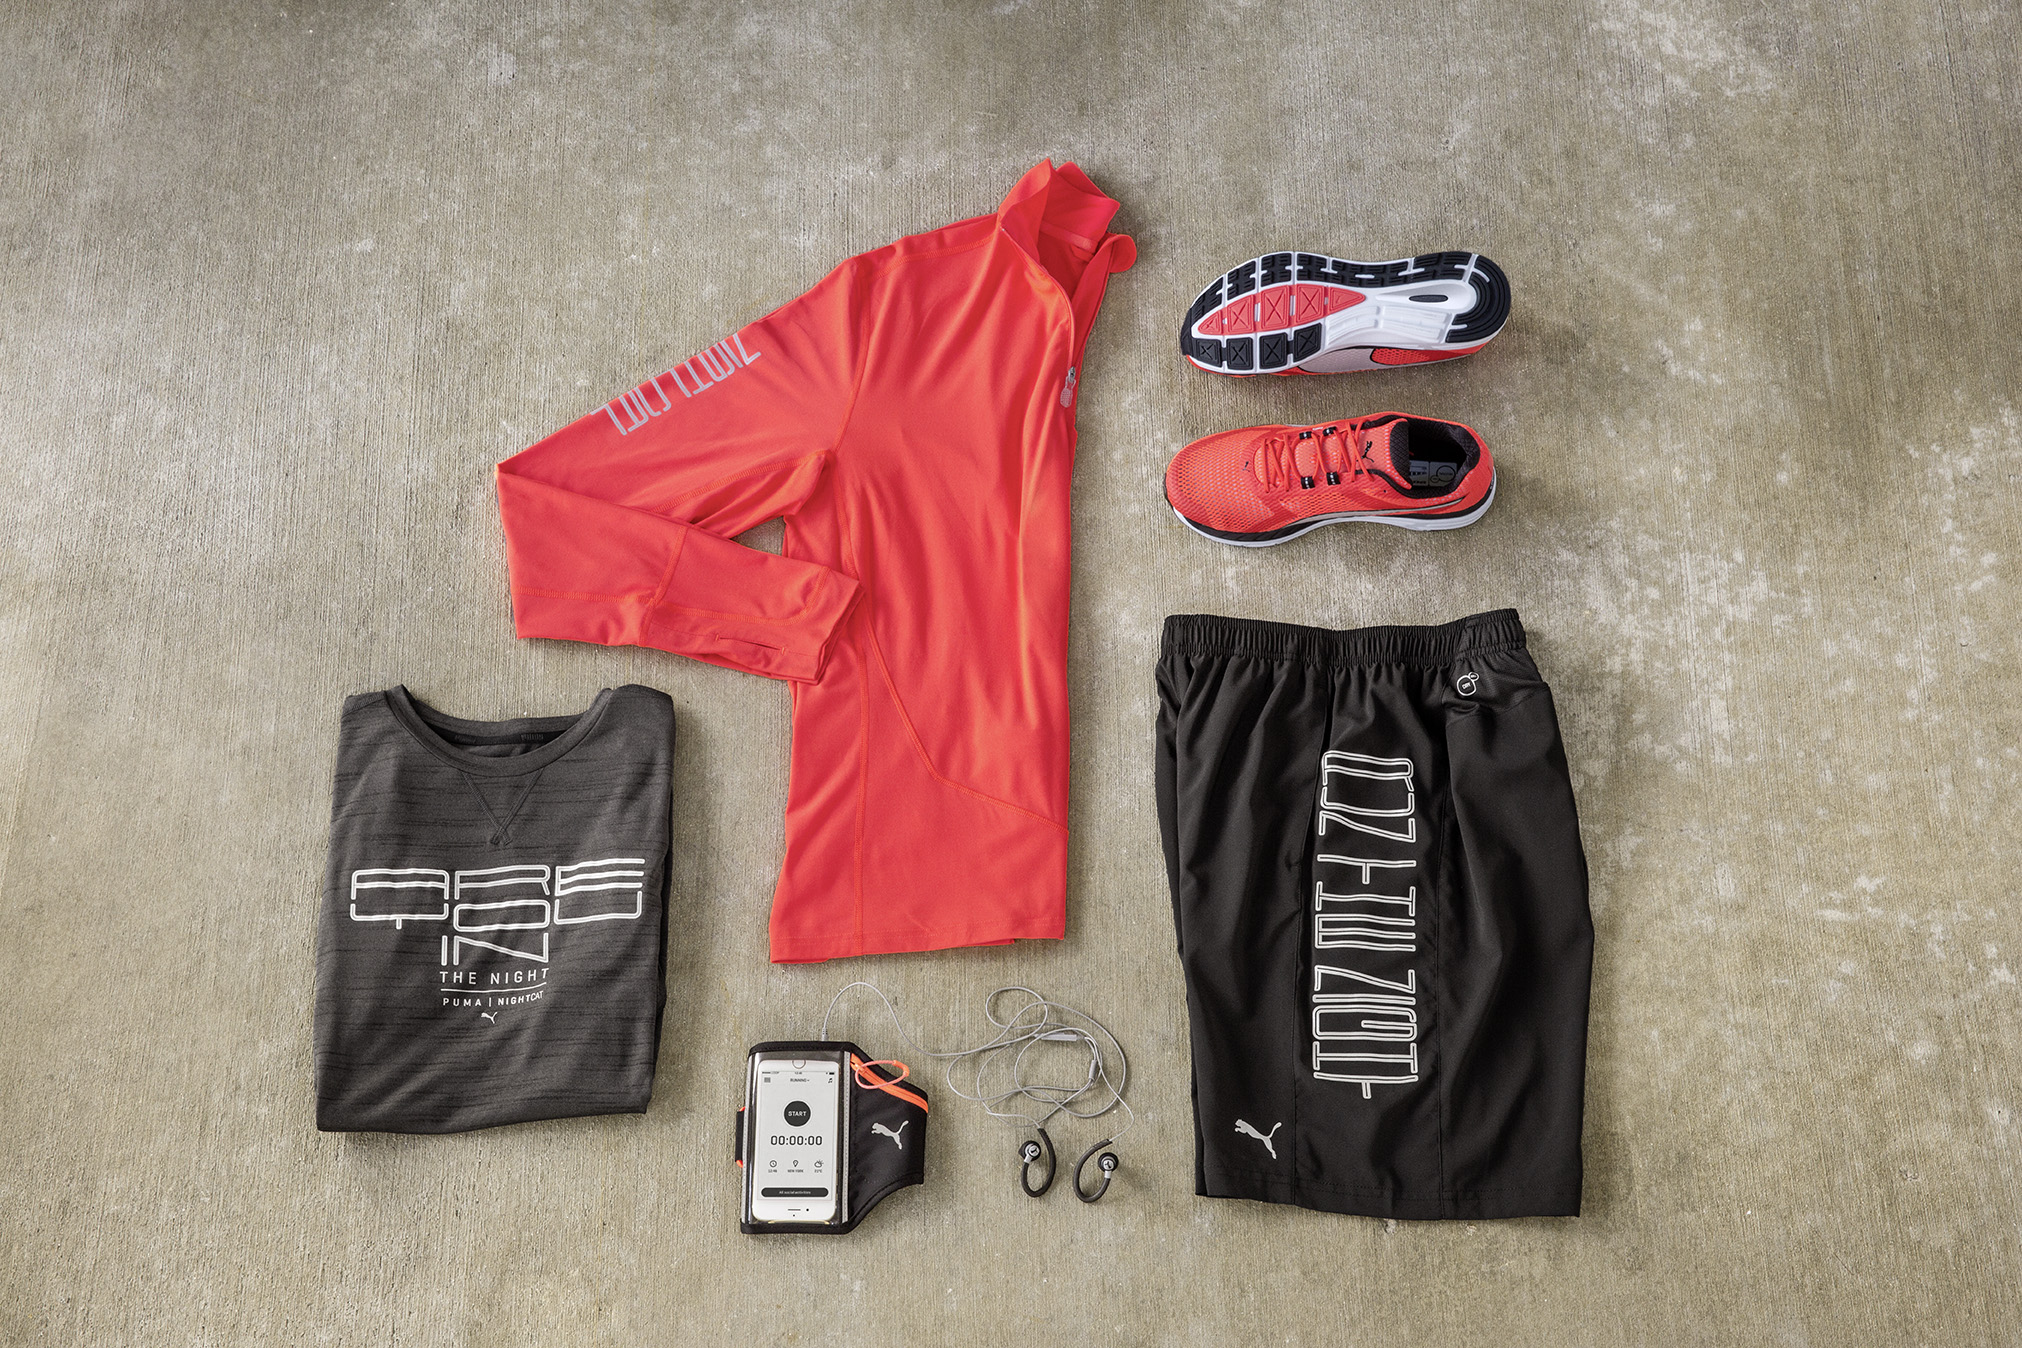 PUMA INTRODUCES THE NEW SPEED 500 WITHIN ITS TECHINICAL RUNNING RANGE | Best Communications